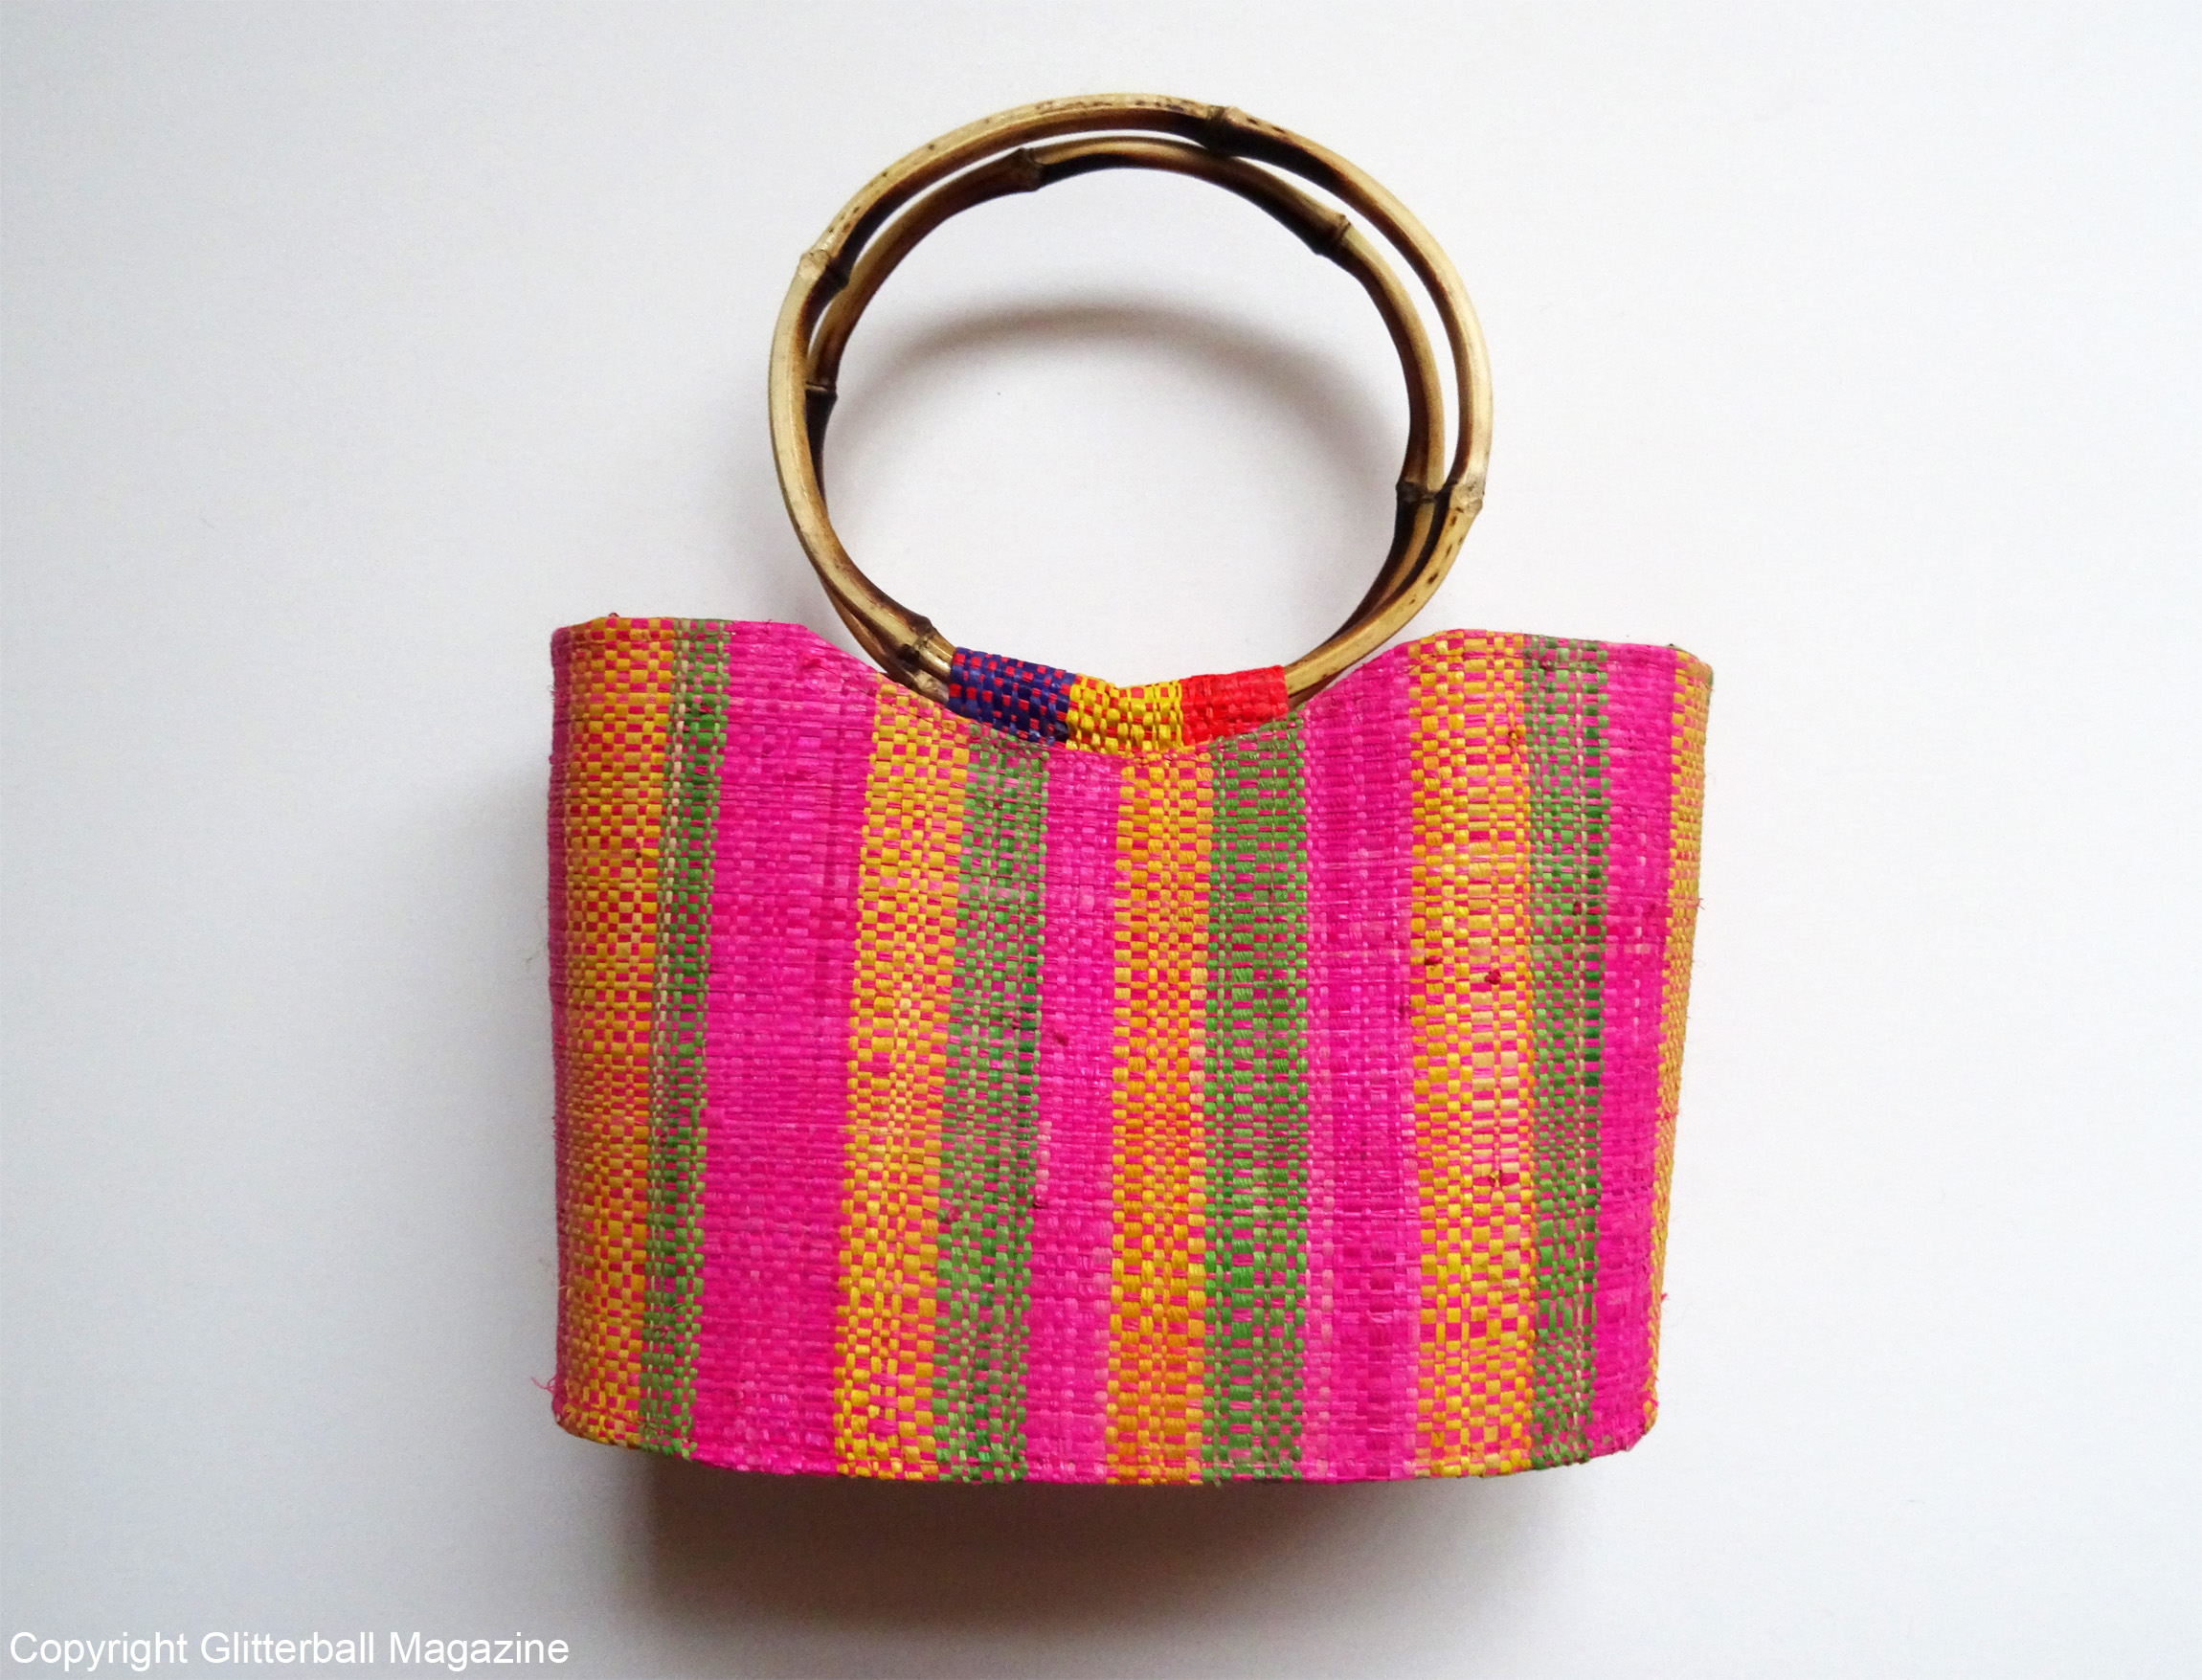 A PRETTY BAG FROM THE NATIVE HANDICRAFT COMPANY - Glitterball Magazine